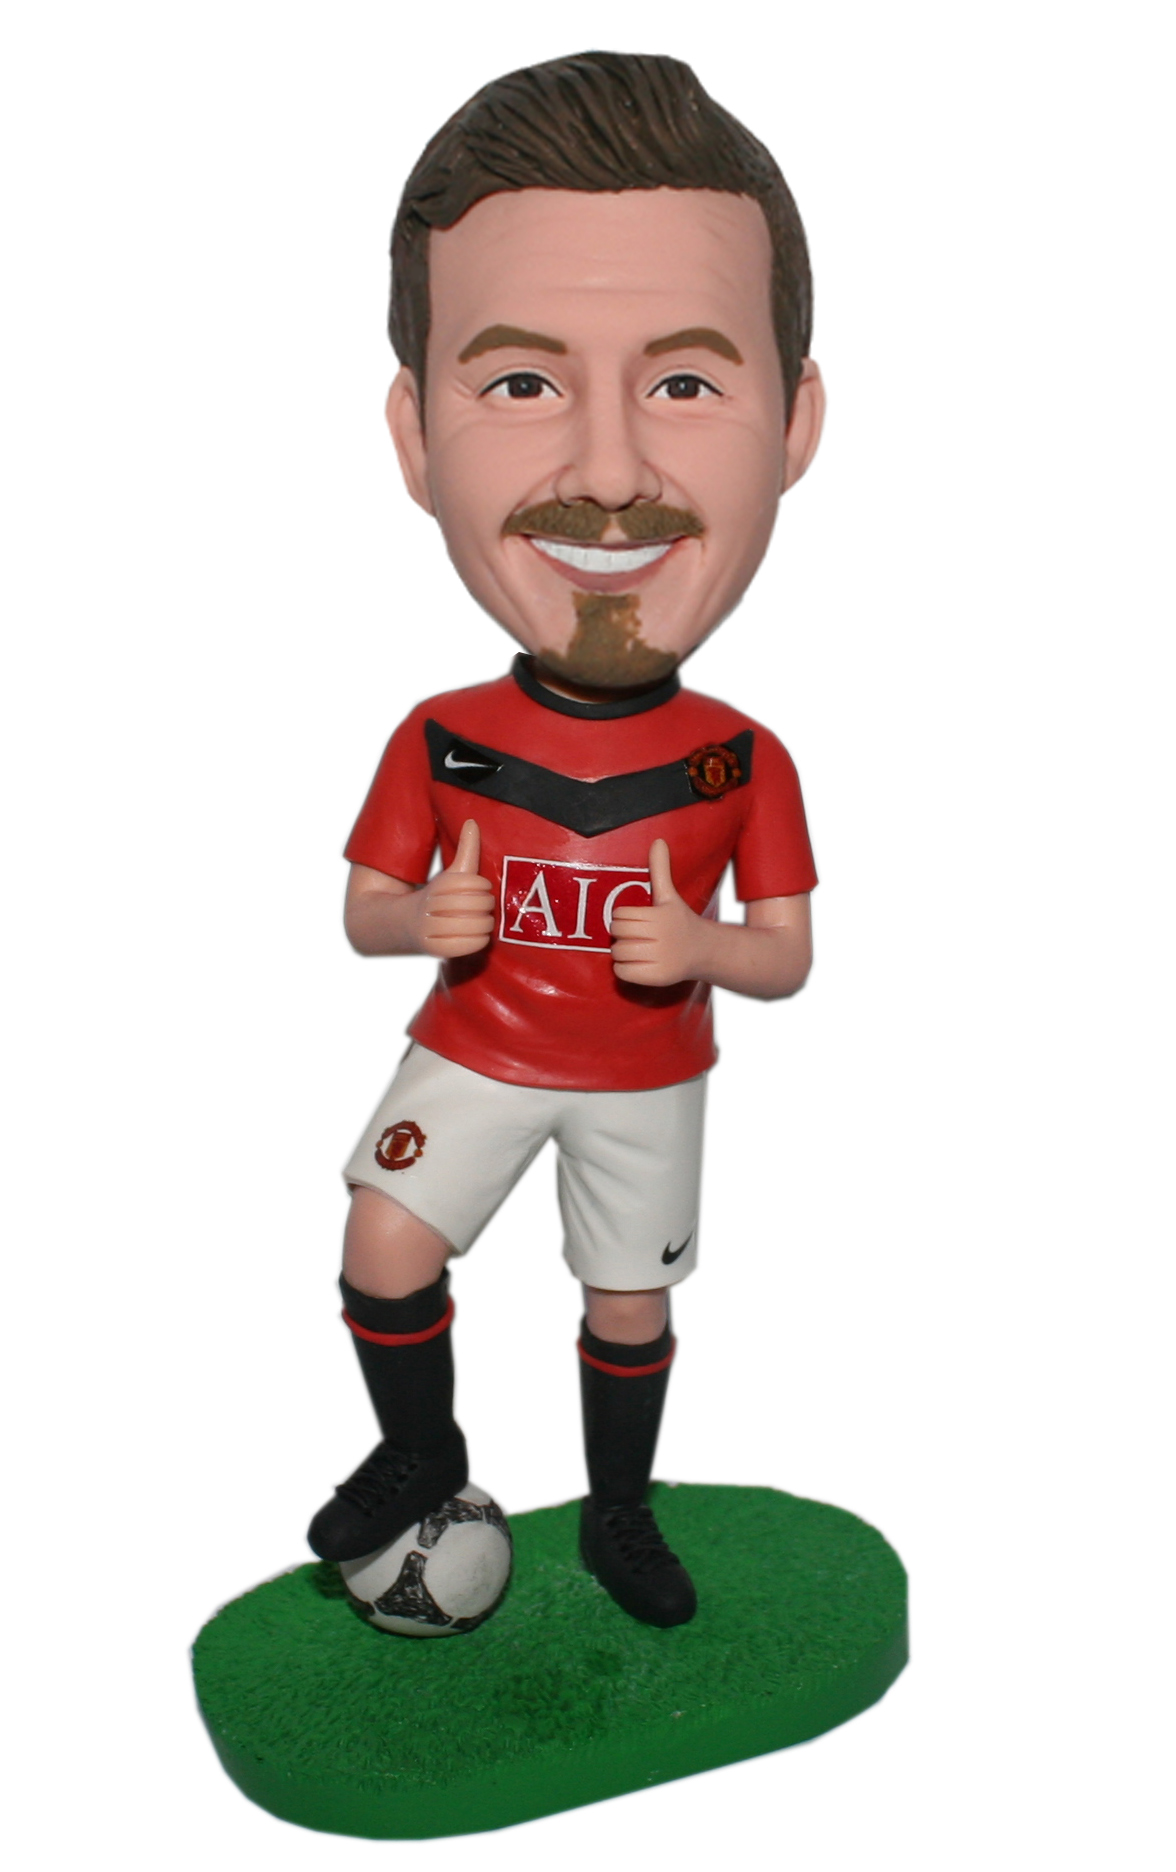 Right Foot Rests On The Soccer Ball Bobble Head Doll